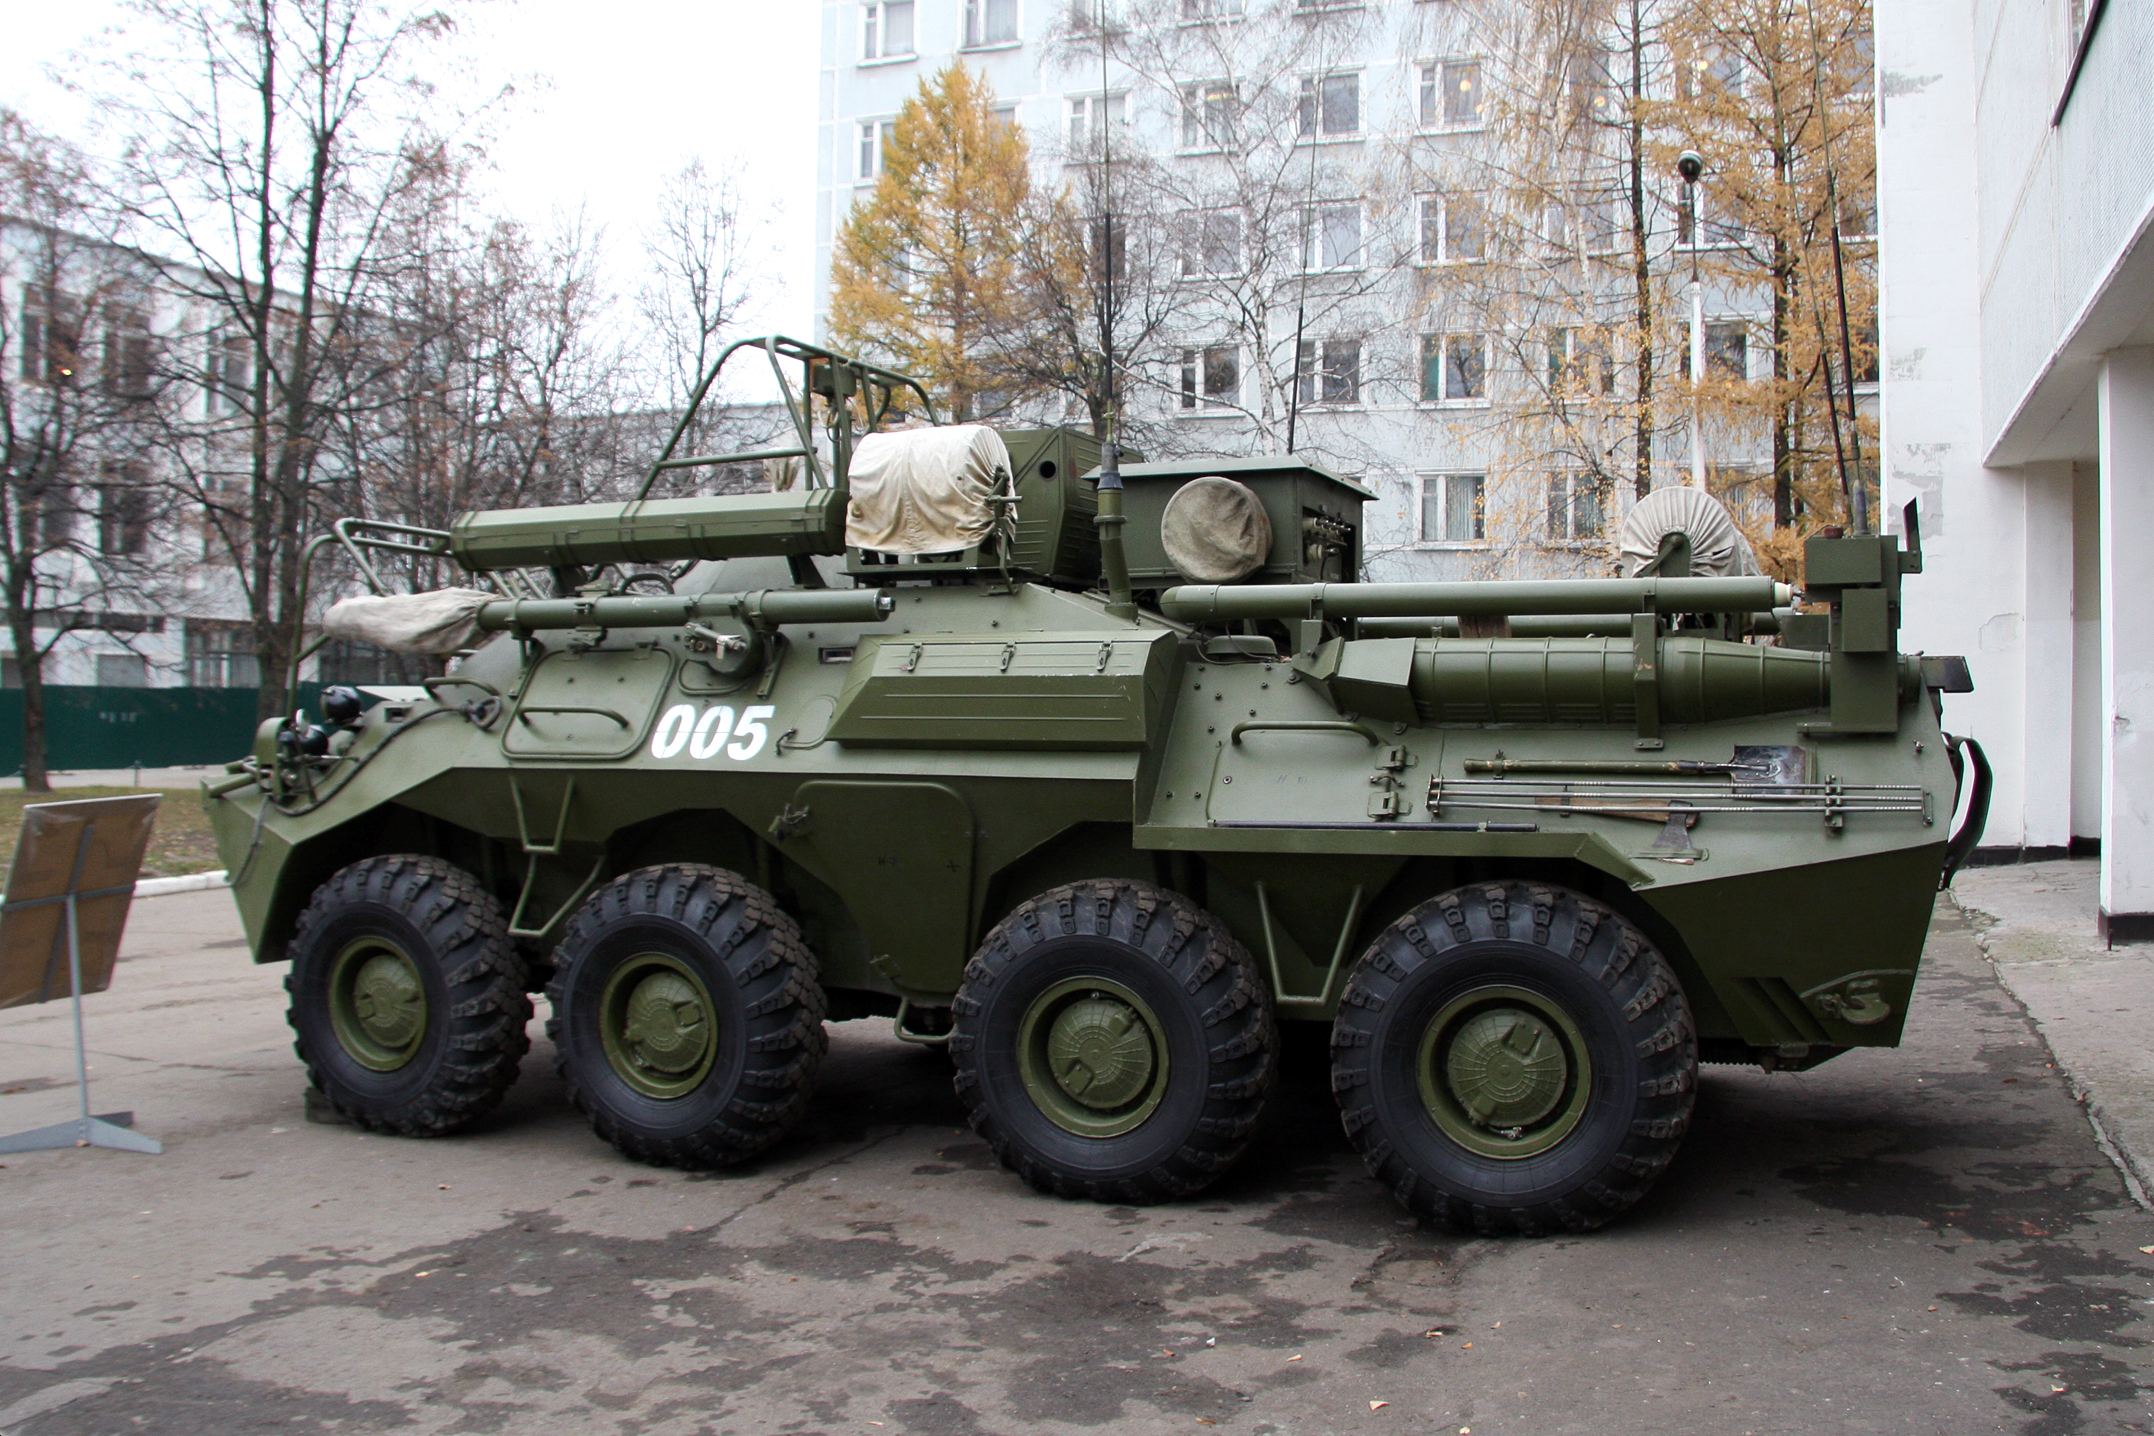 The 74th Guards Motorized Rifle Brigade received the first upgraded BMP-2M with Berehok module 43